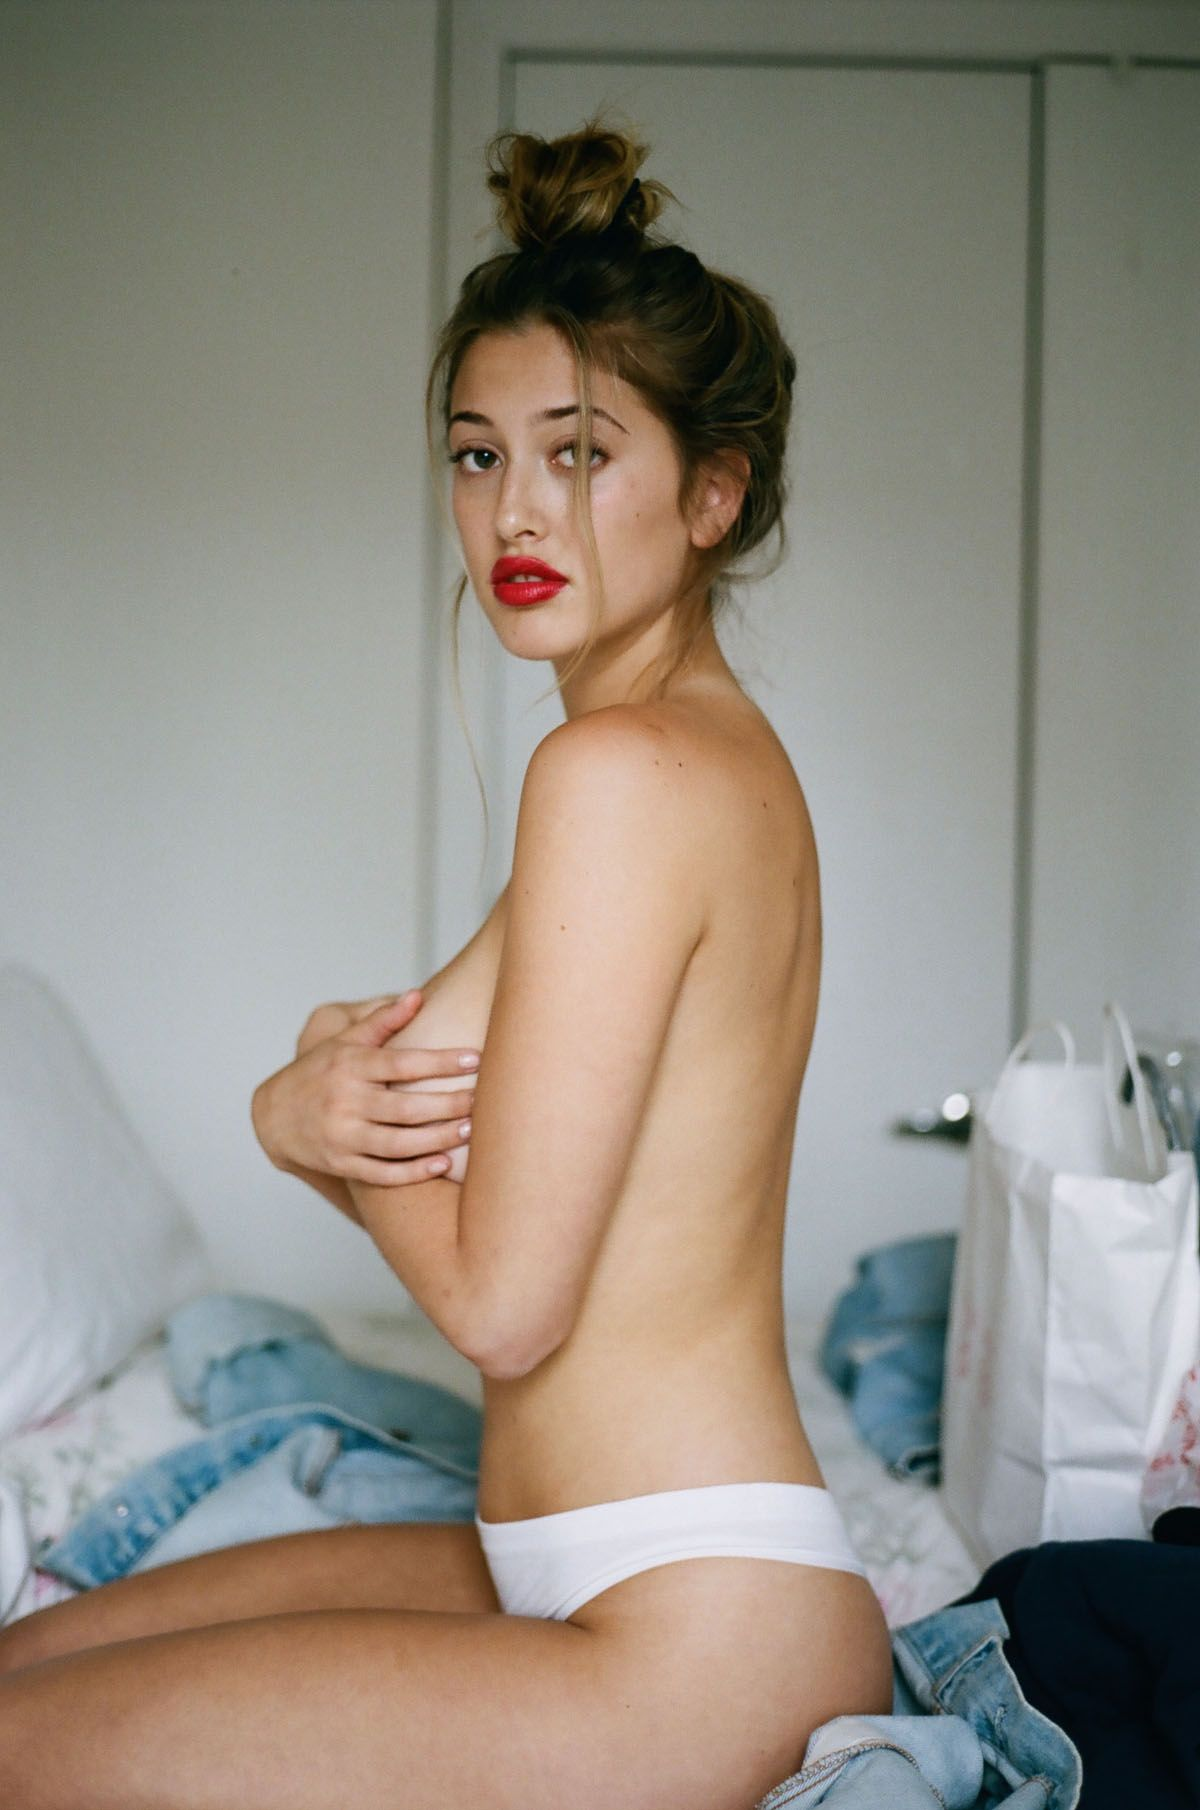 lindsey kevitch nude